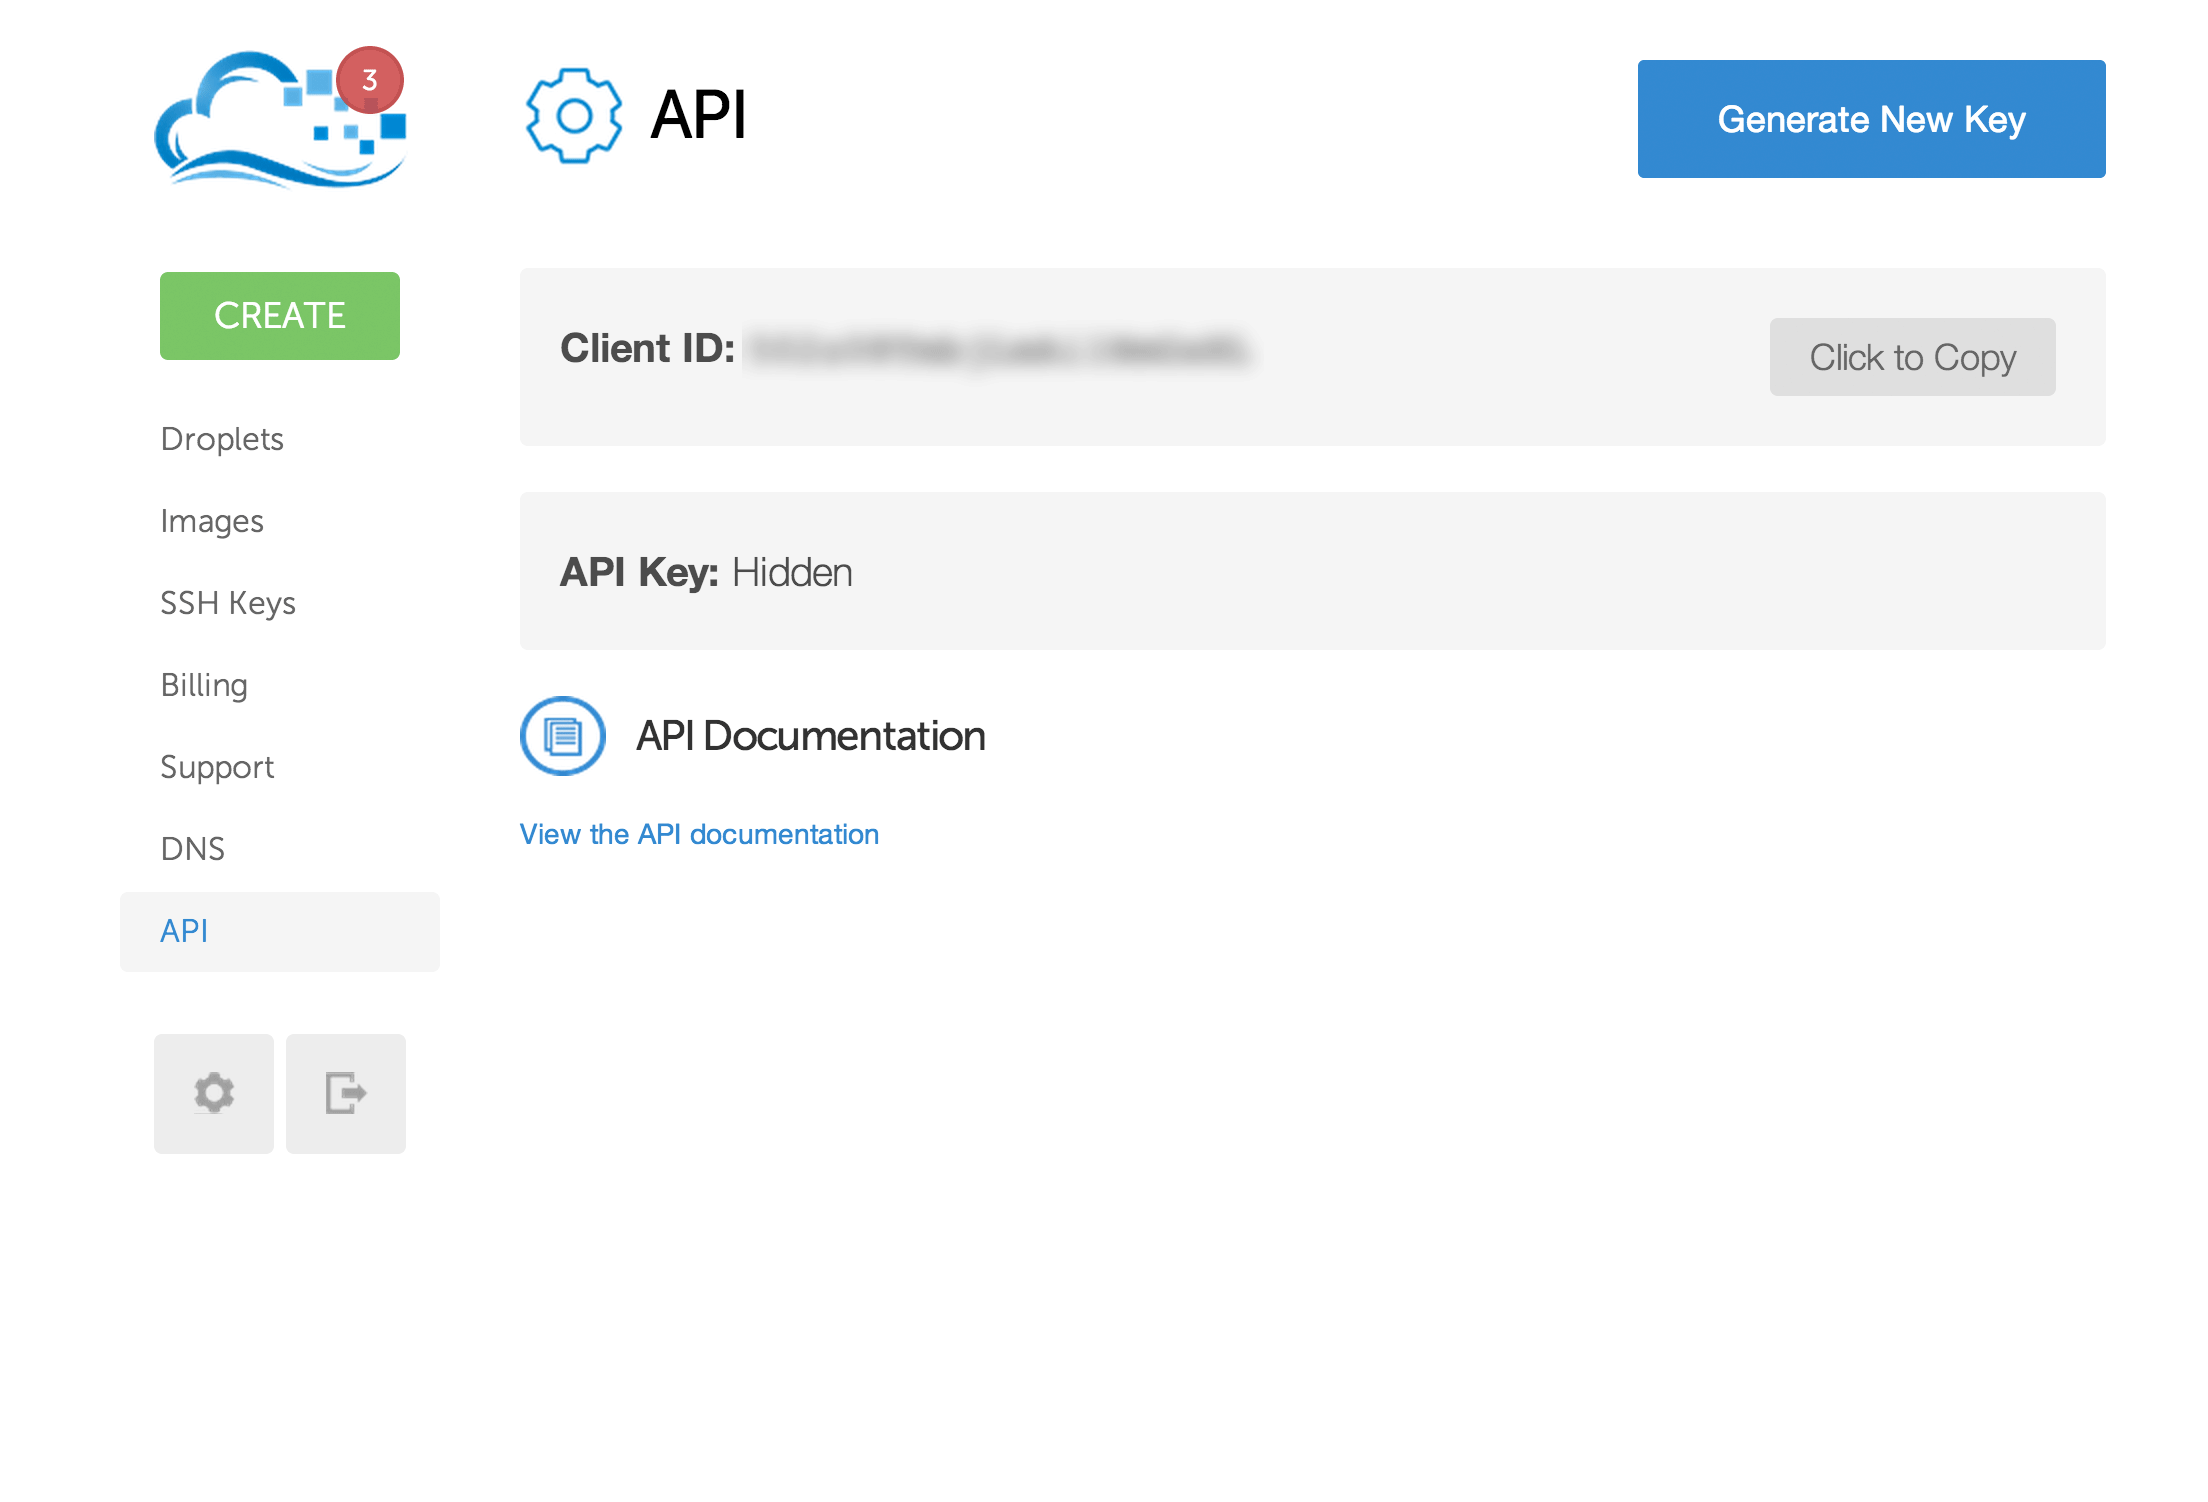 DigitalOcean API